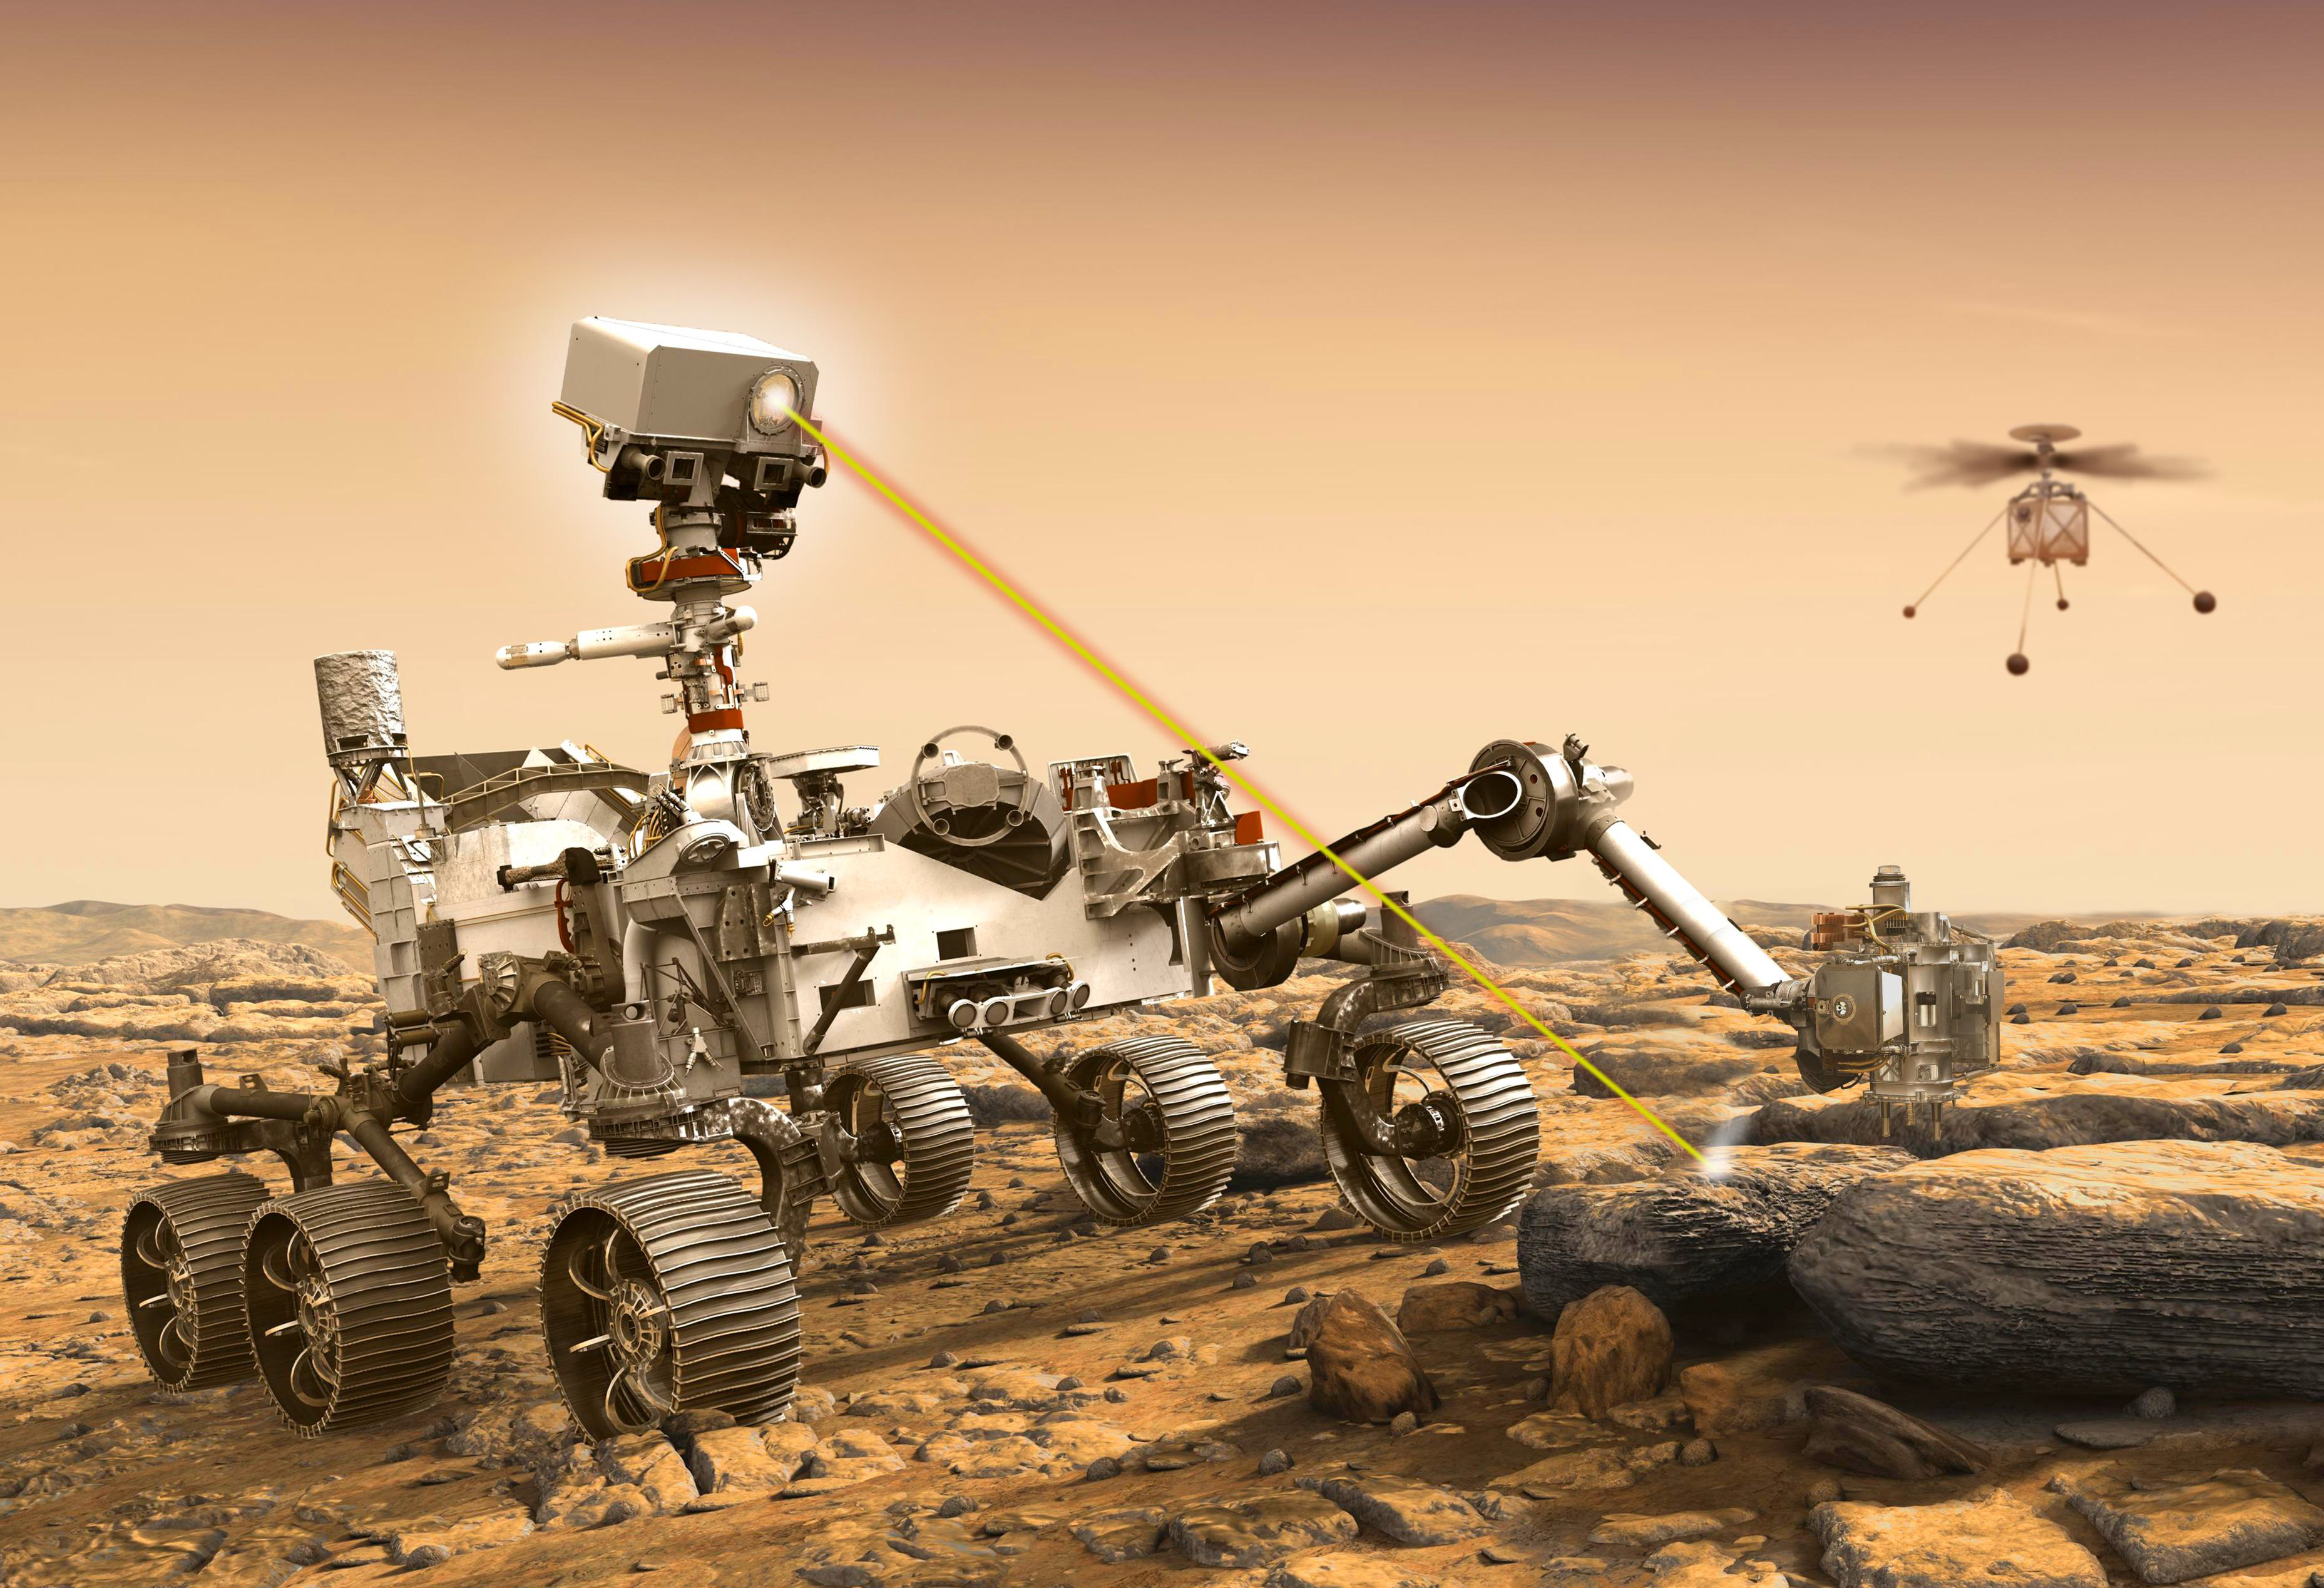 Mars 2020 mission launch: Perseverance rover and its SuperCam instrument safely on their way to Mars